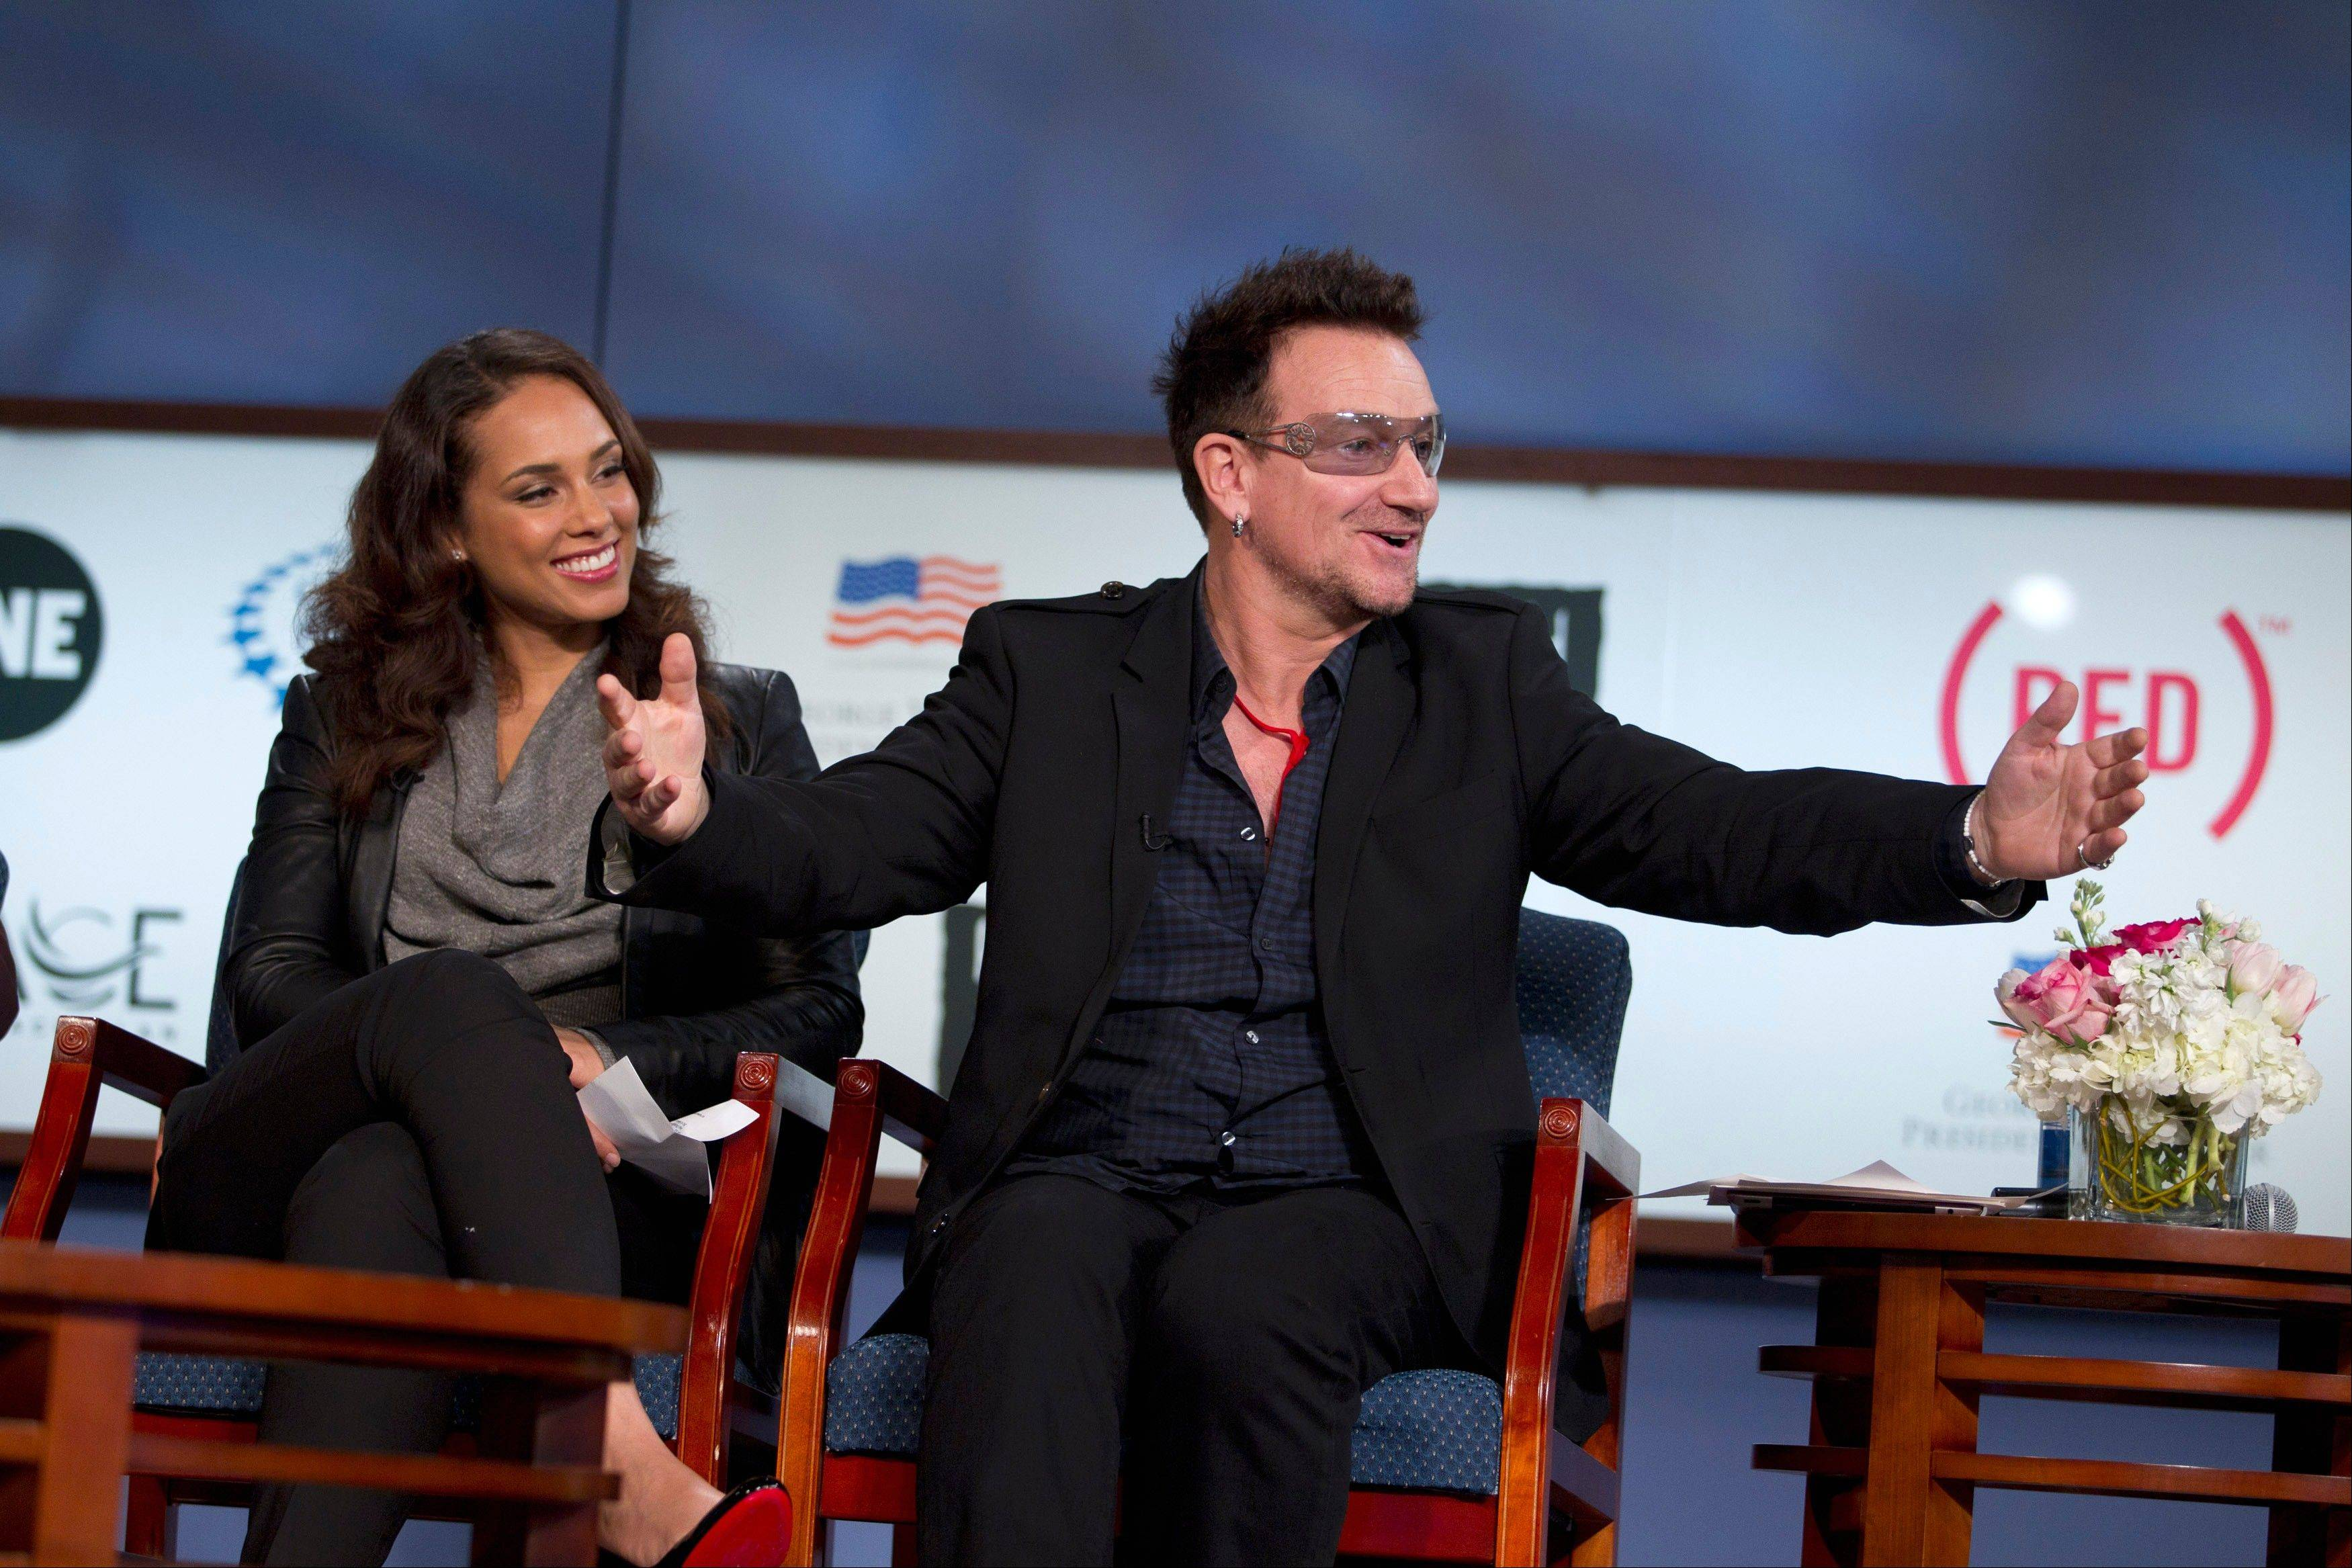 Musicians Bono, right, and Alicia Keys take part in a panel discussion on World AIDS Day, Thursday, Dec. 1, 2011, at George Washington University in Washington.